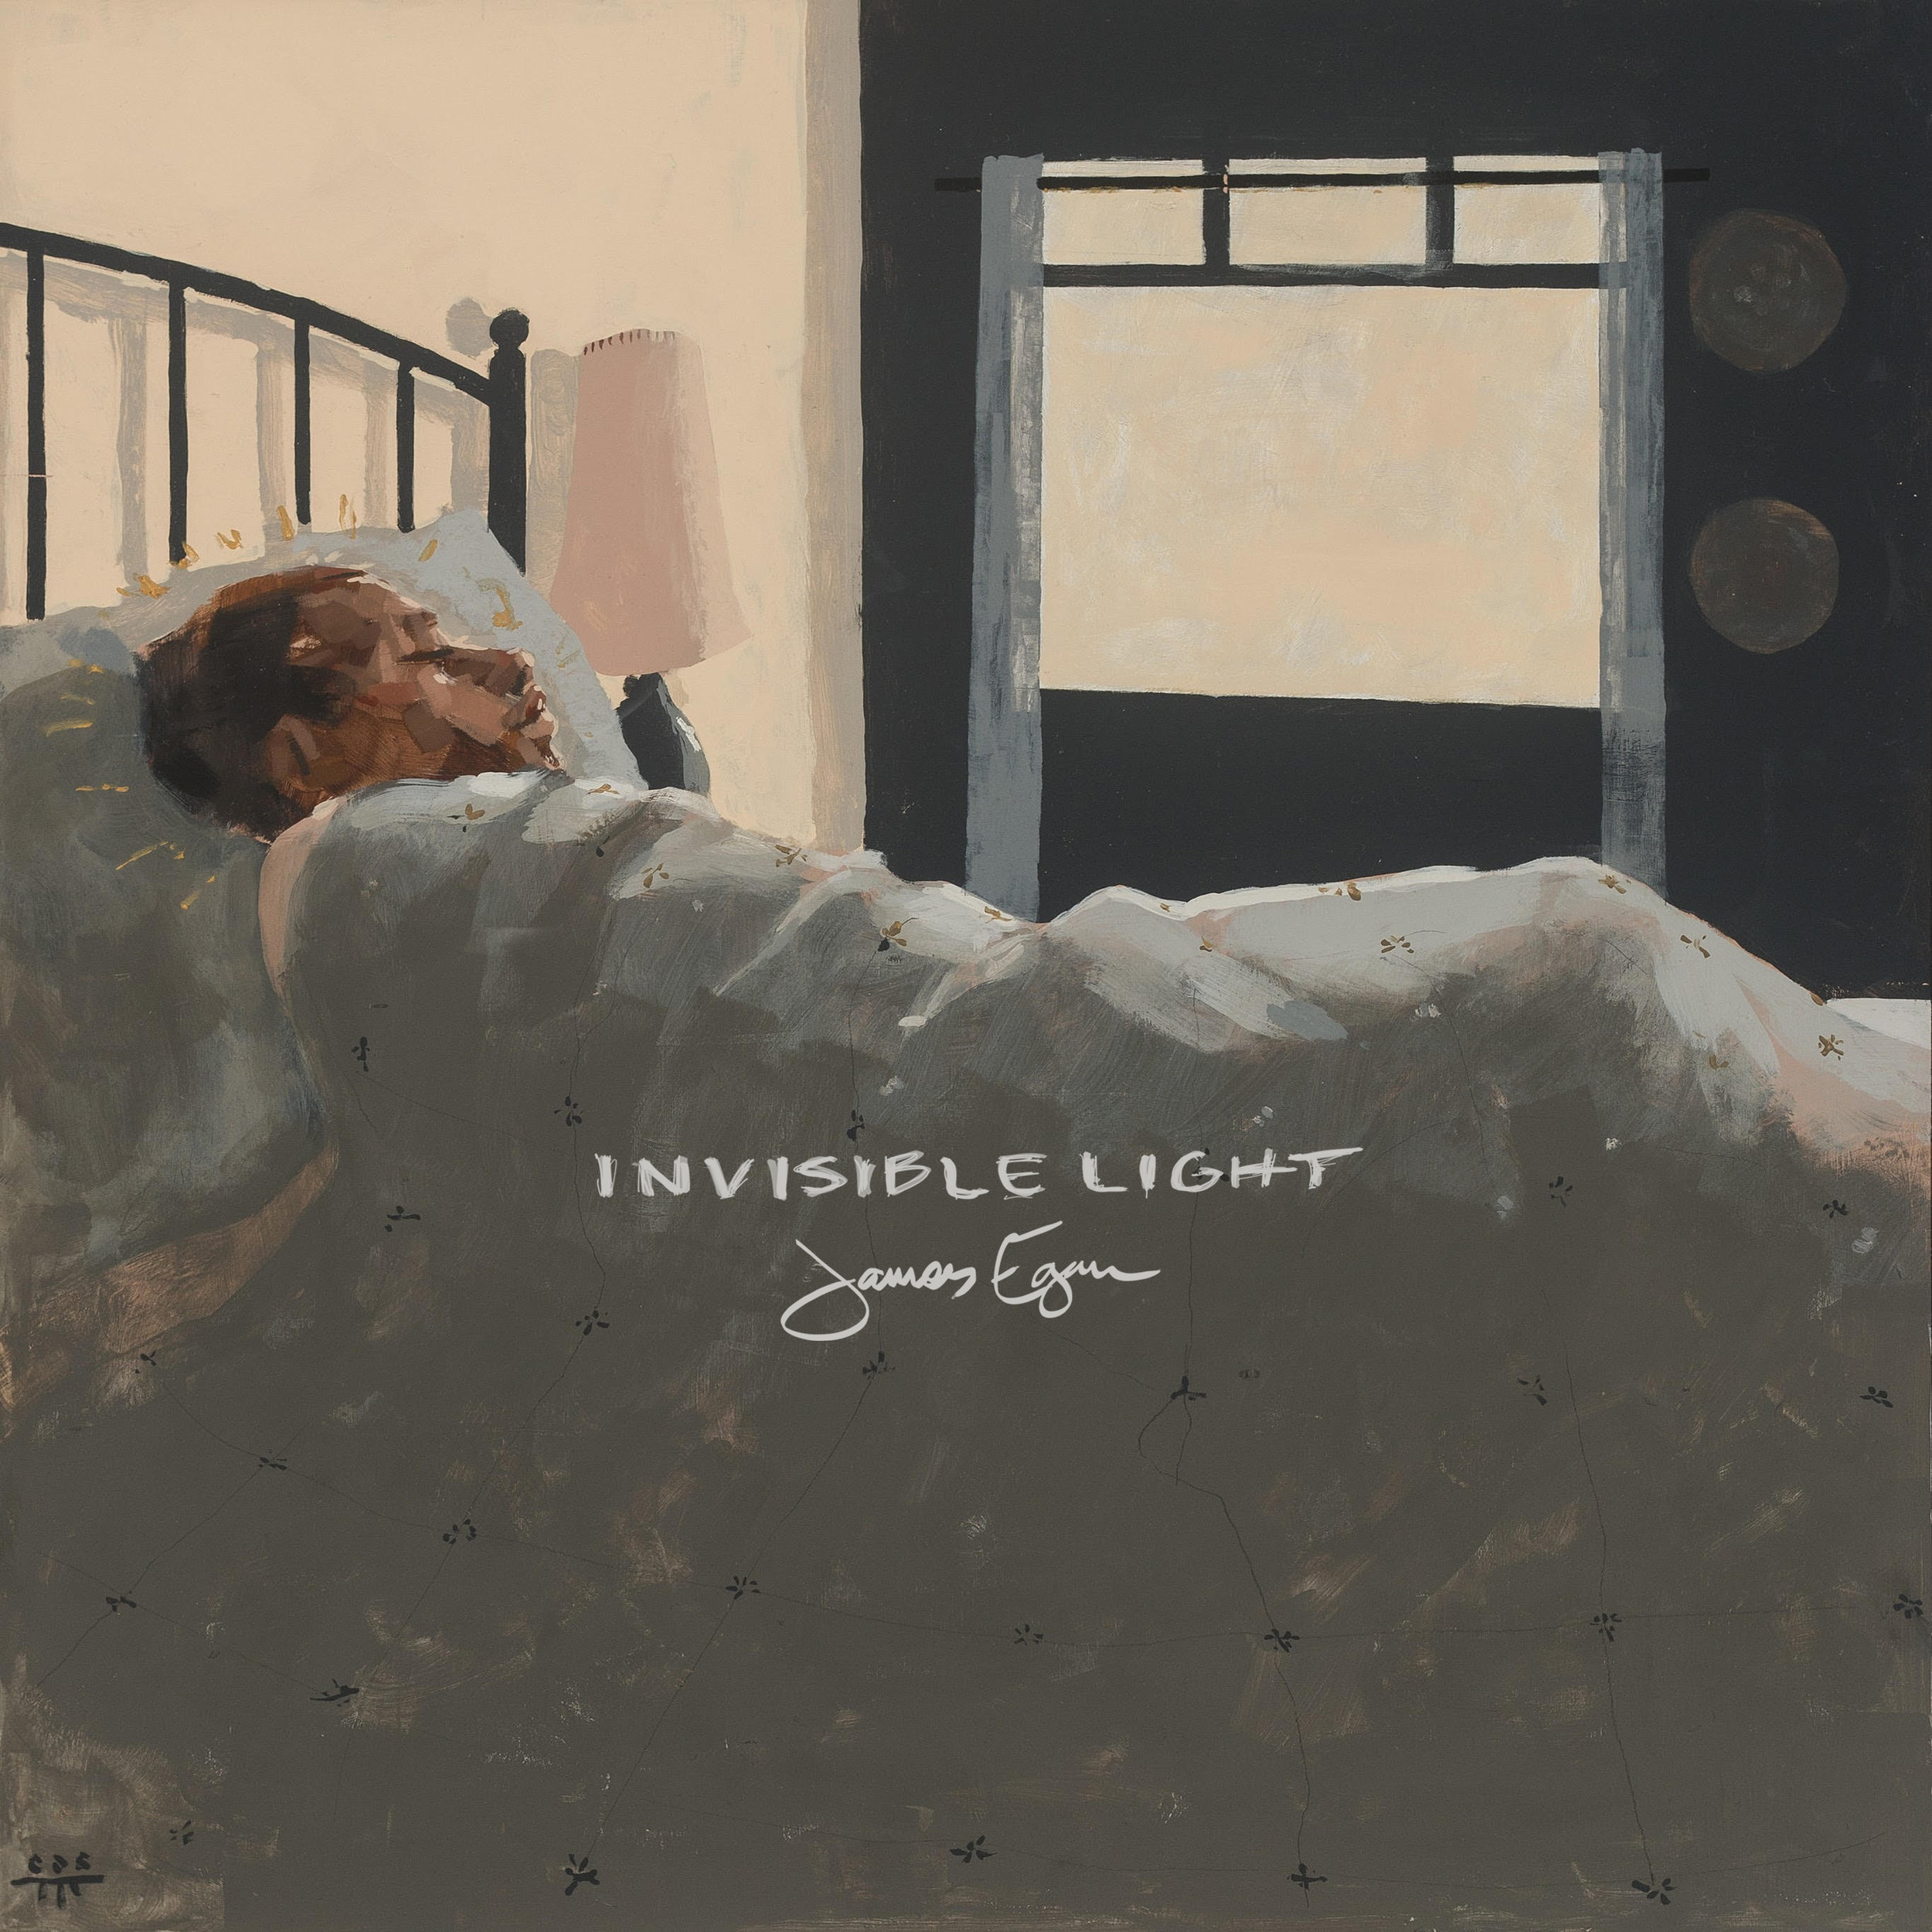 New Album, Invisible Light, Out Now - Download today at iTunes, Bandcamp, Amazon, or CDBaby.Stream on Spotify, Apple Music, SoundCloud, and other platforms.